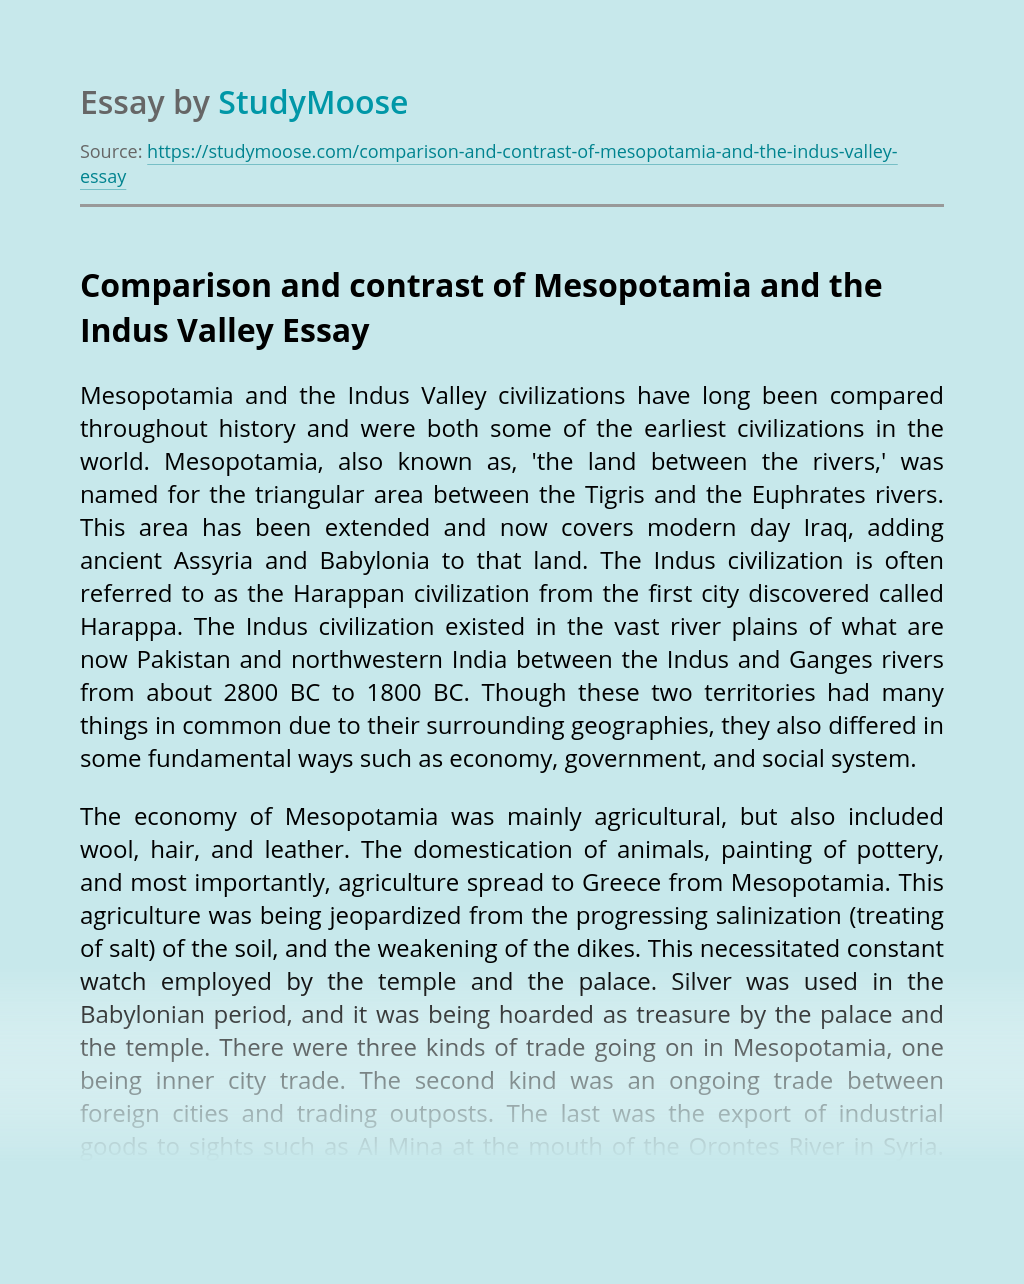 Comparison and contrast of Mesopotamia and the Indus Valley